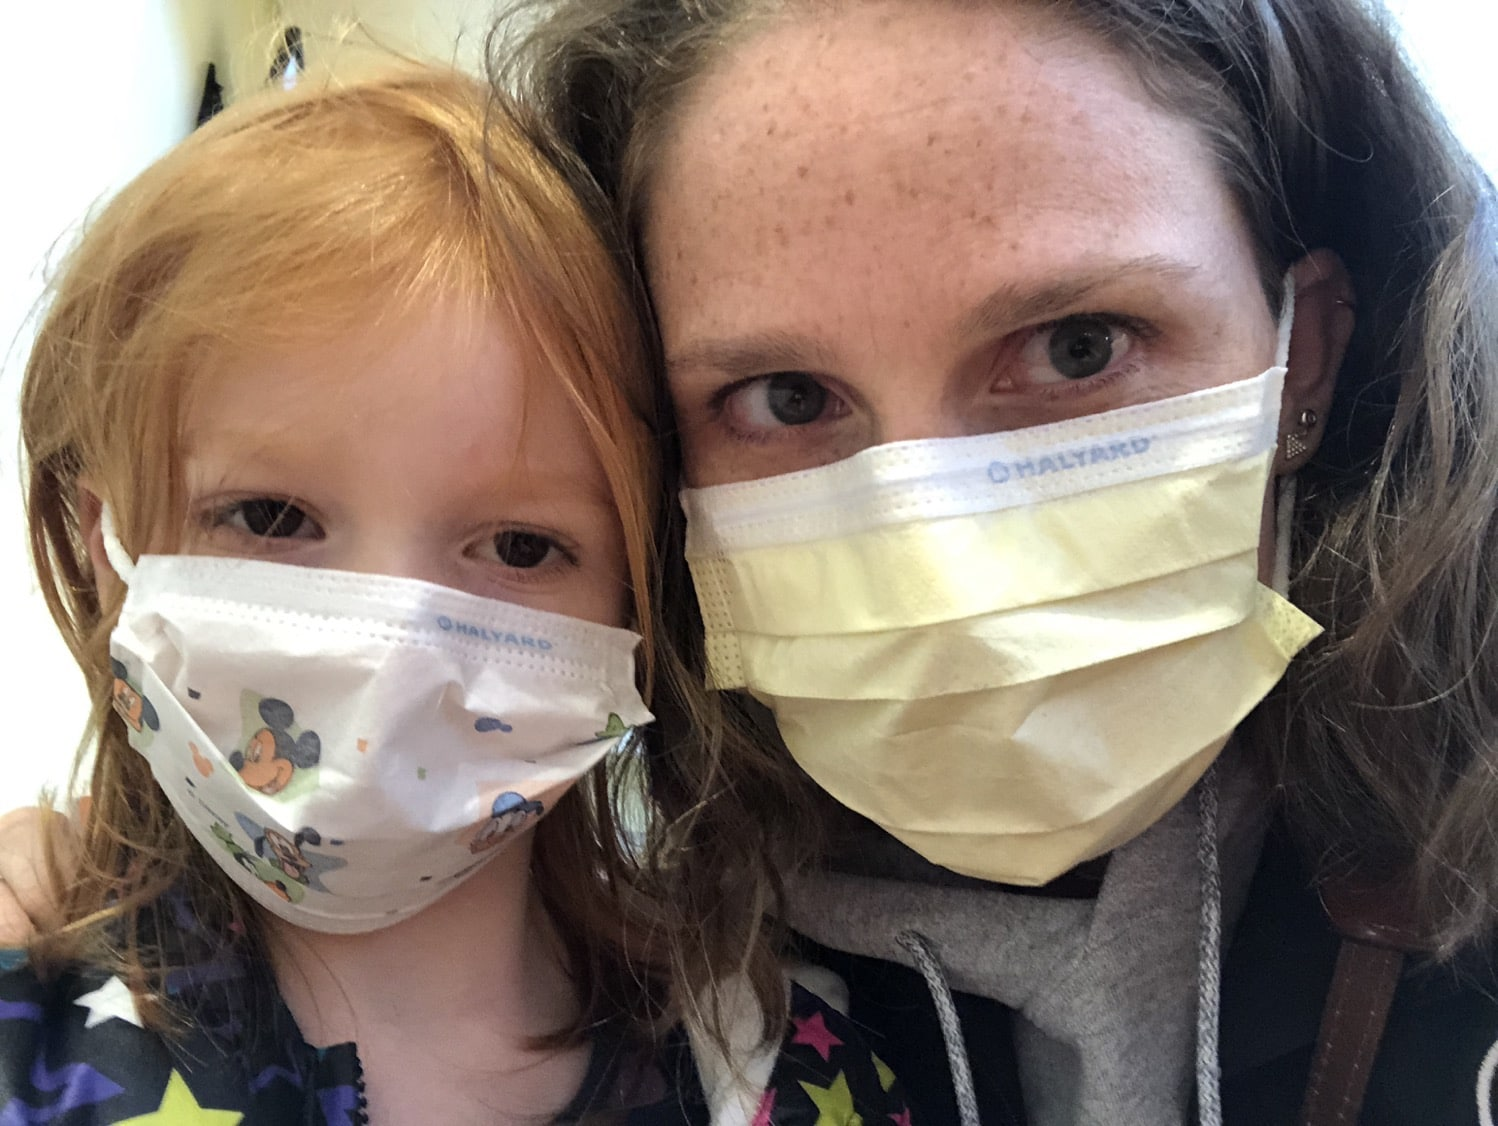 B and Mommy in masks